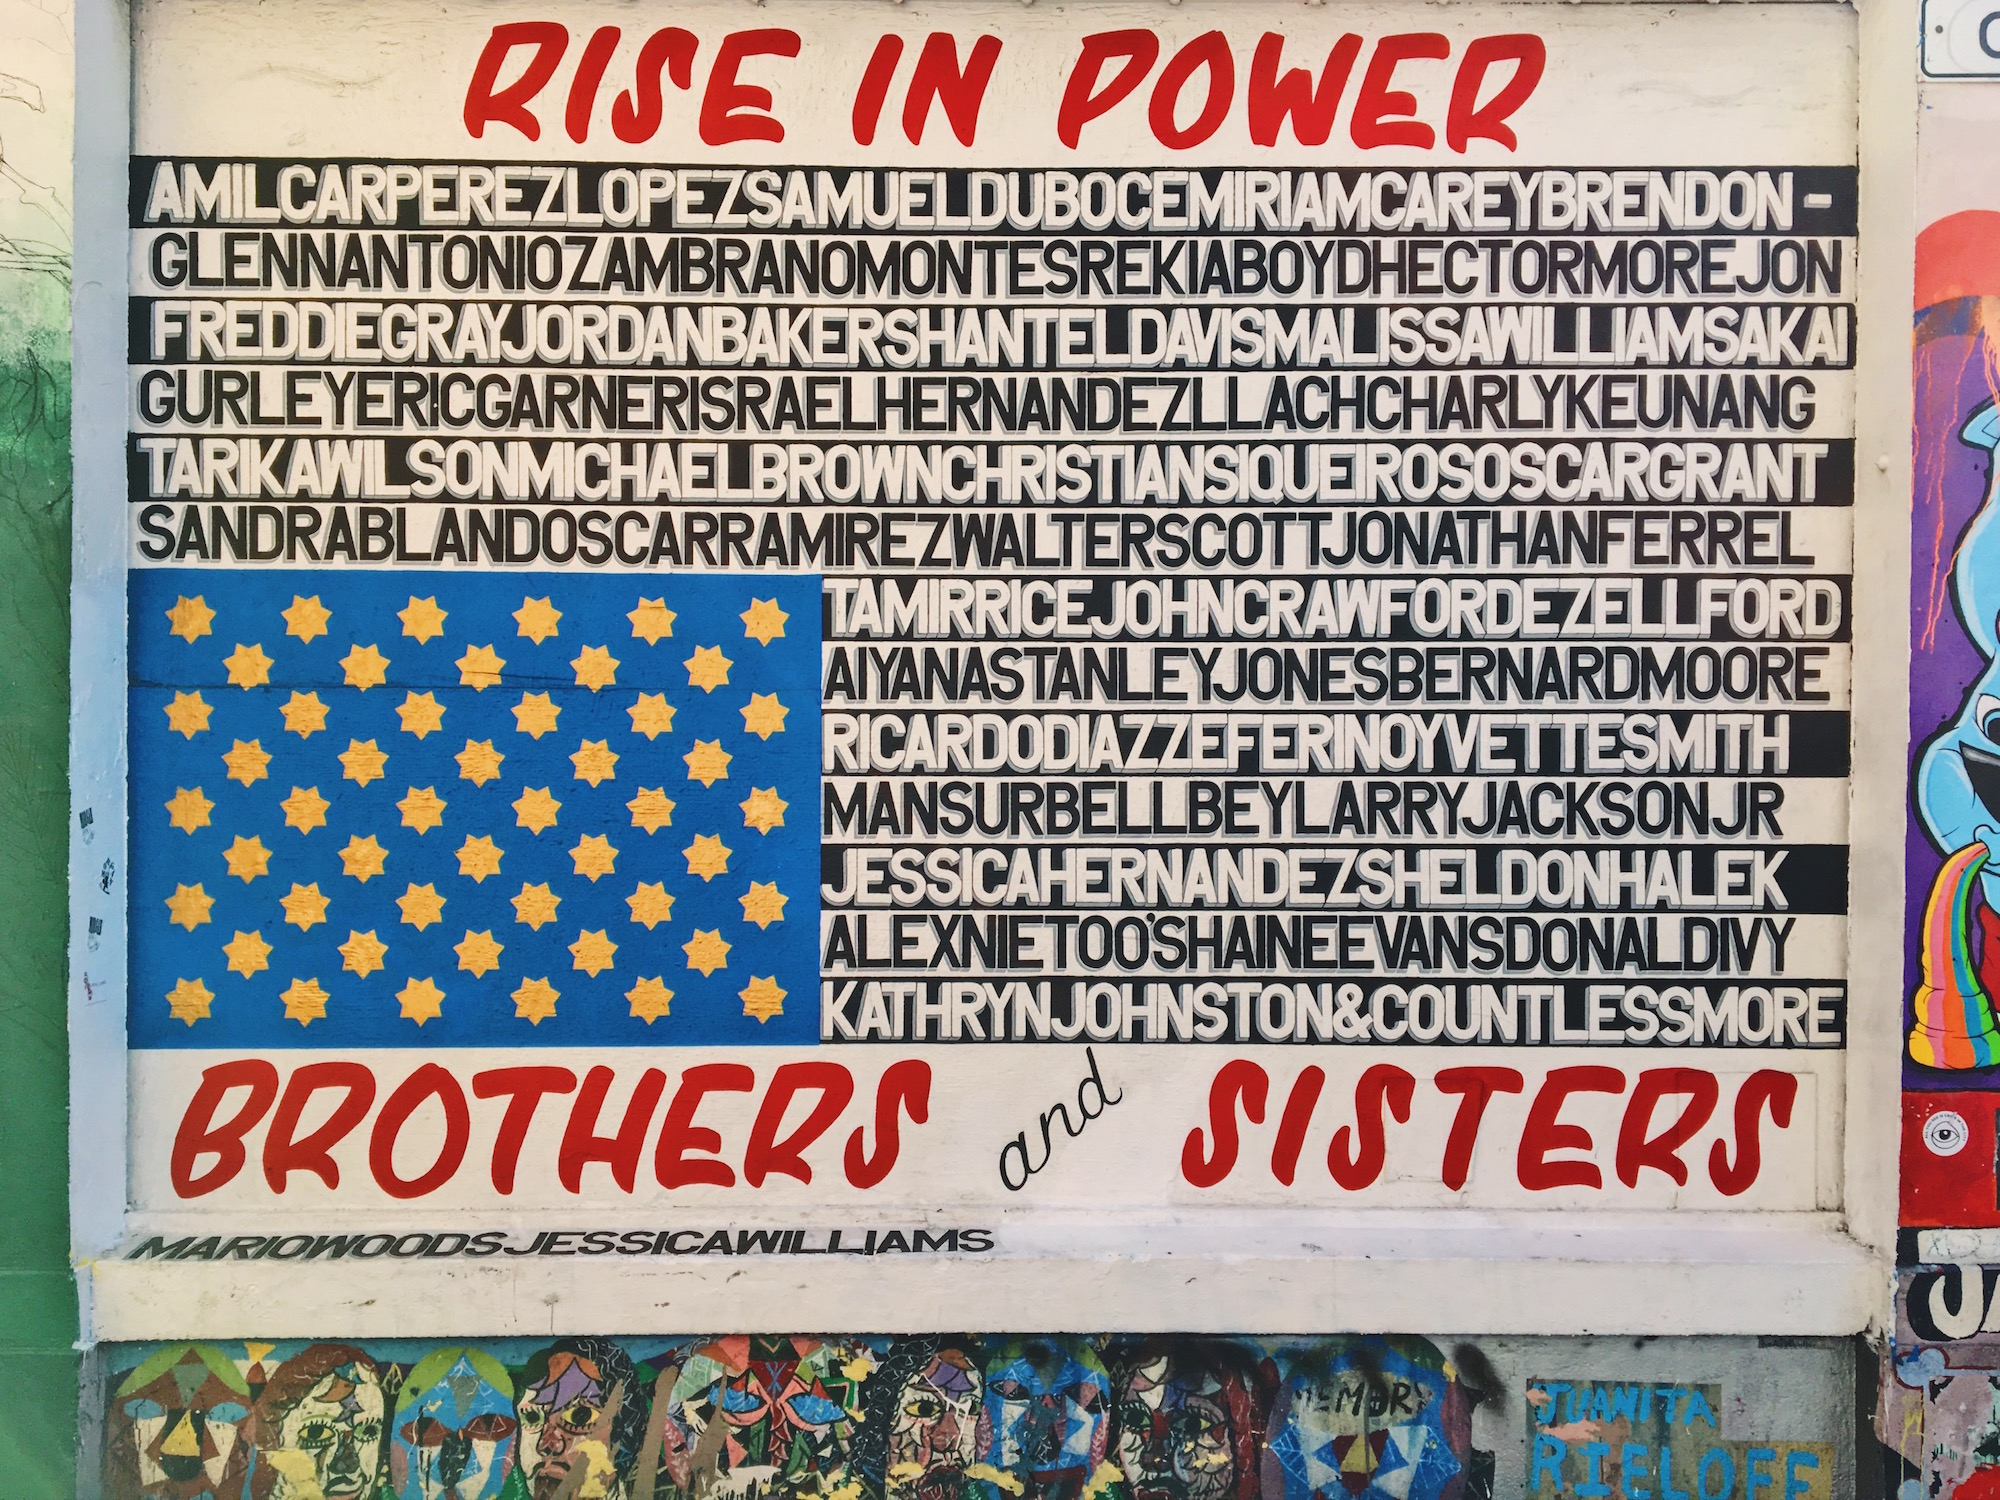 Clarion Alley - Murales nel quartiere Mission di San Francisco - Rise in power brothers and sisters